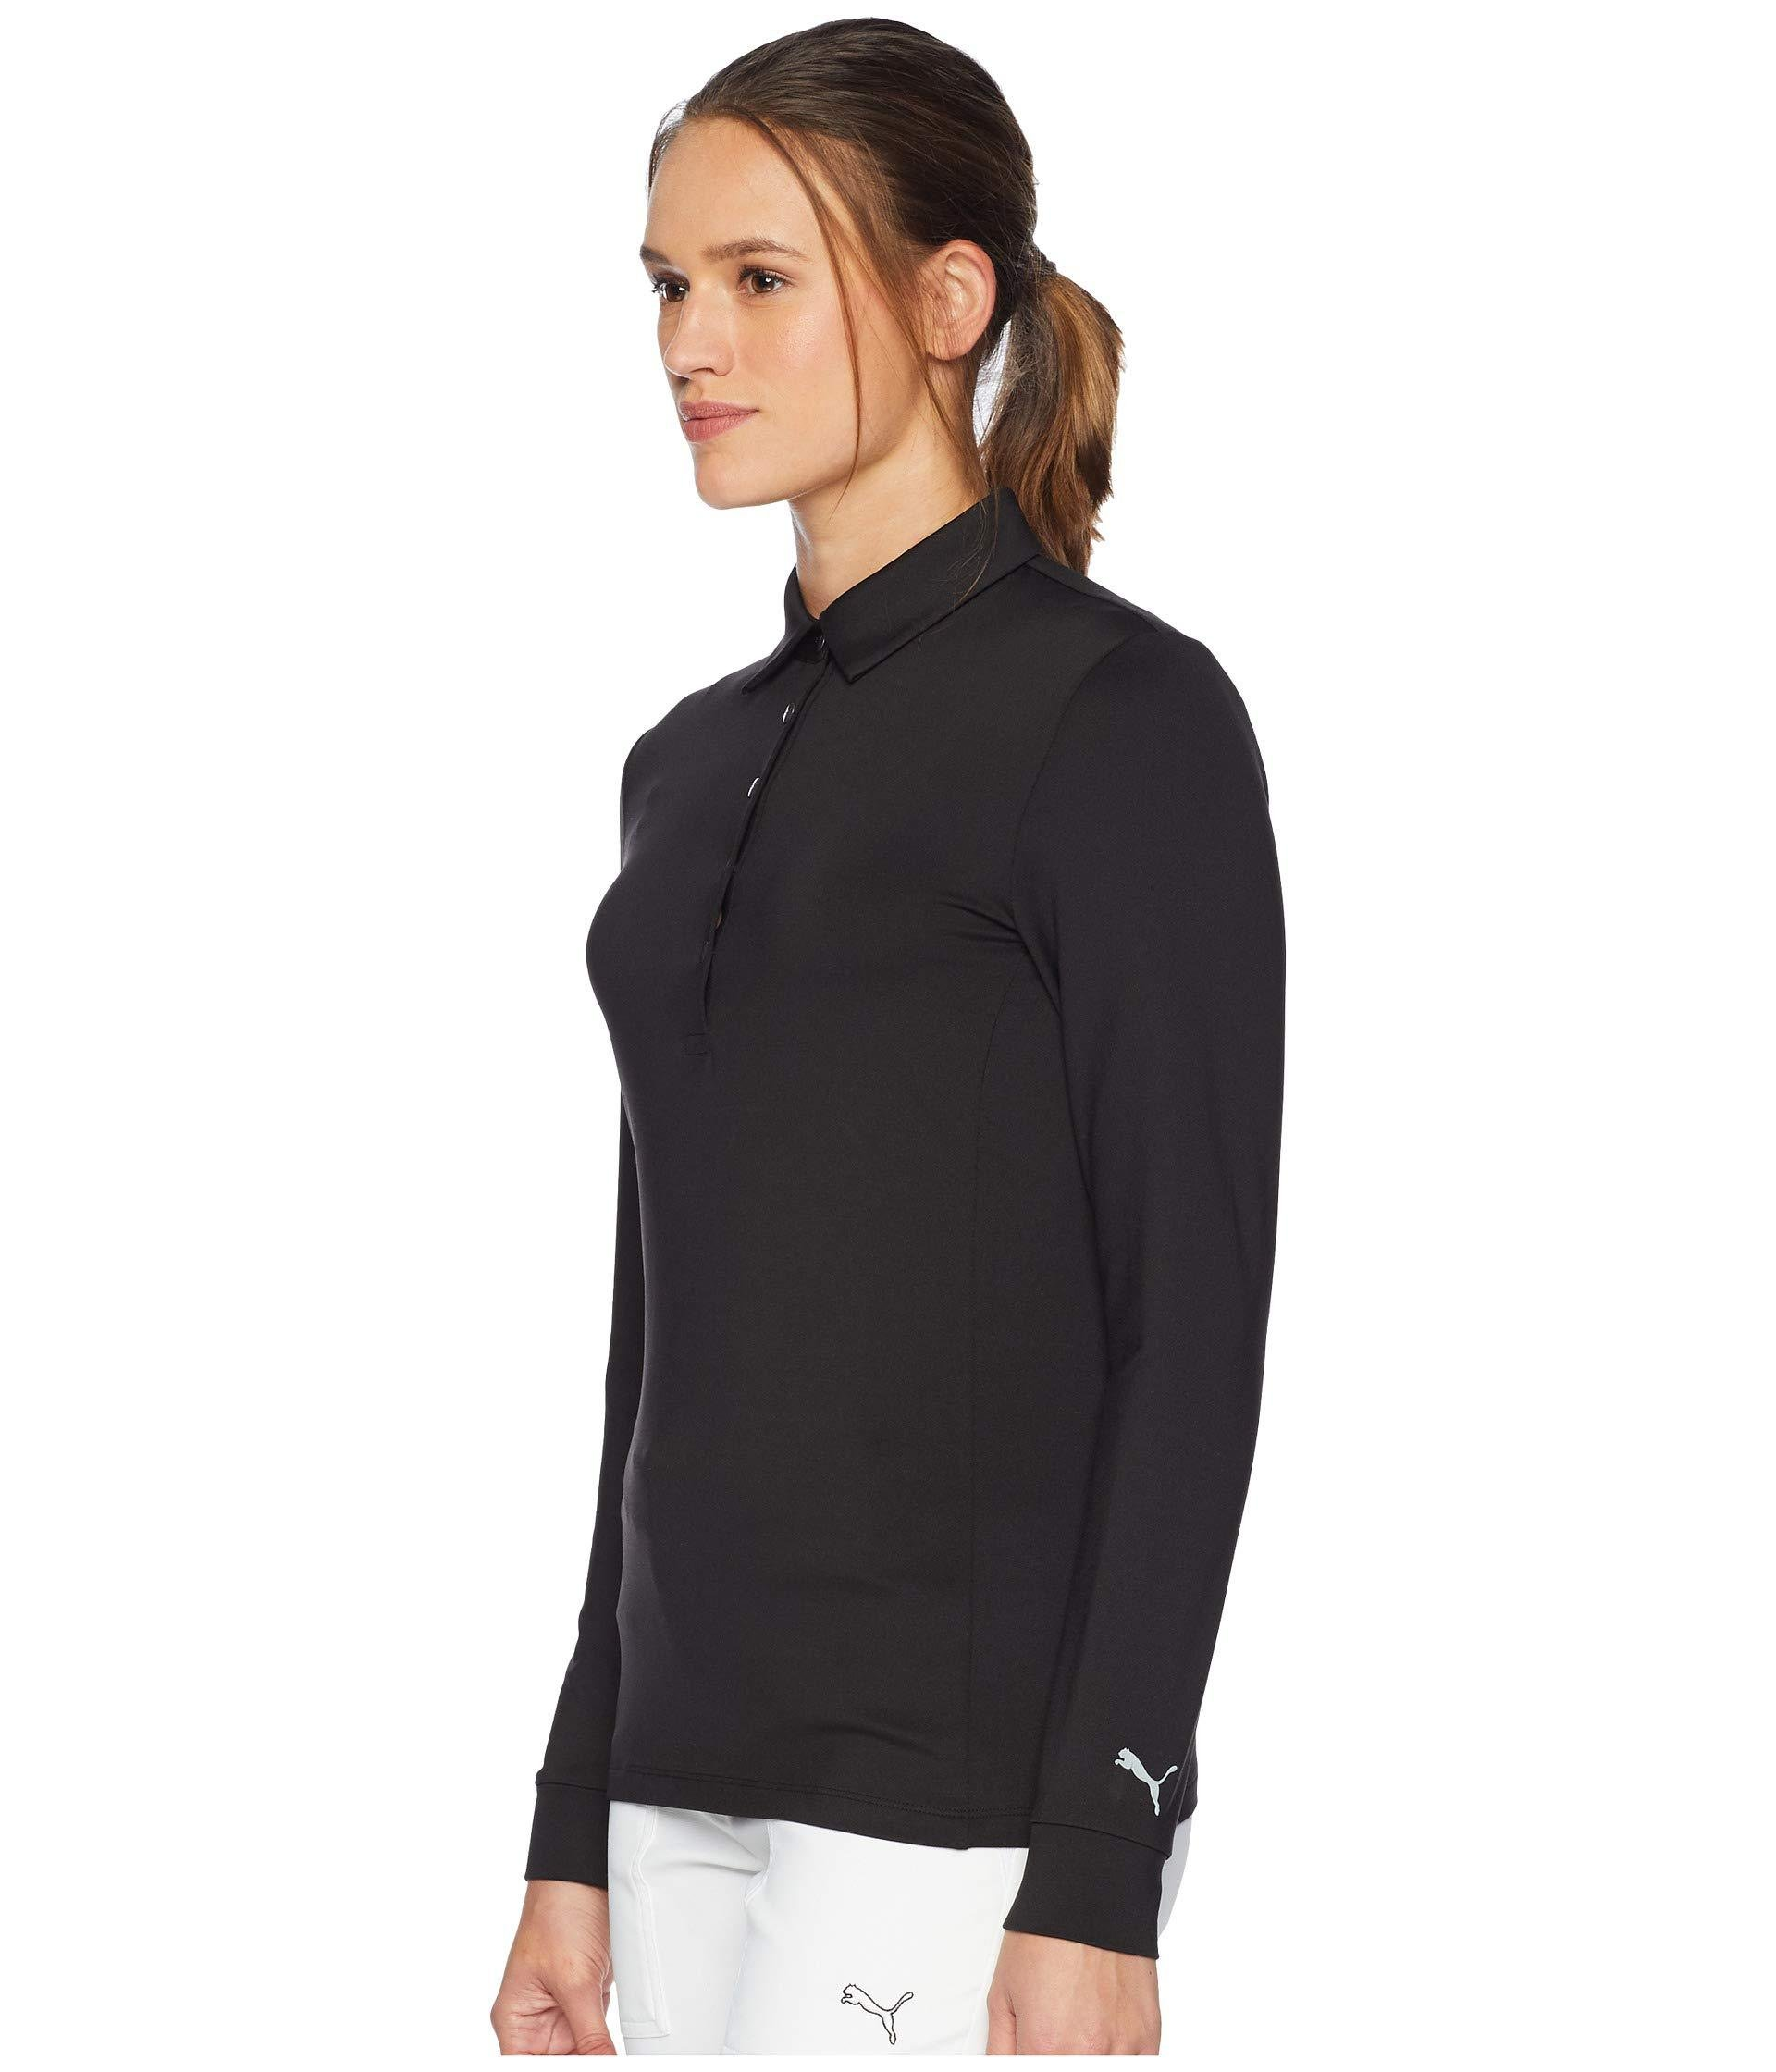 7868276e14d Lyst - PUMA Long Sleeve Polo (black) Women's Long Sleeve Pullover in Black